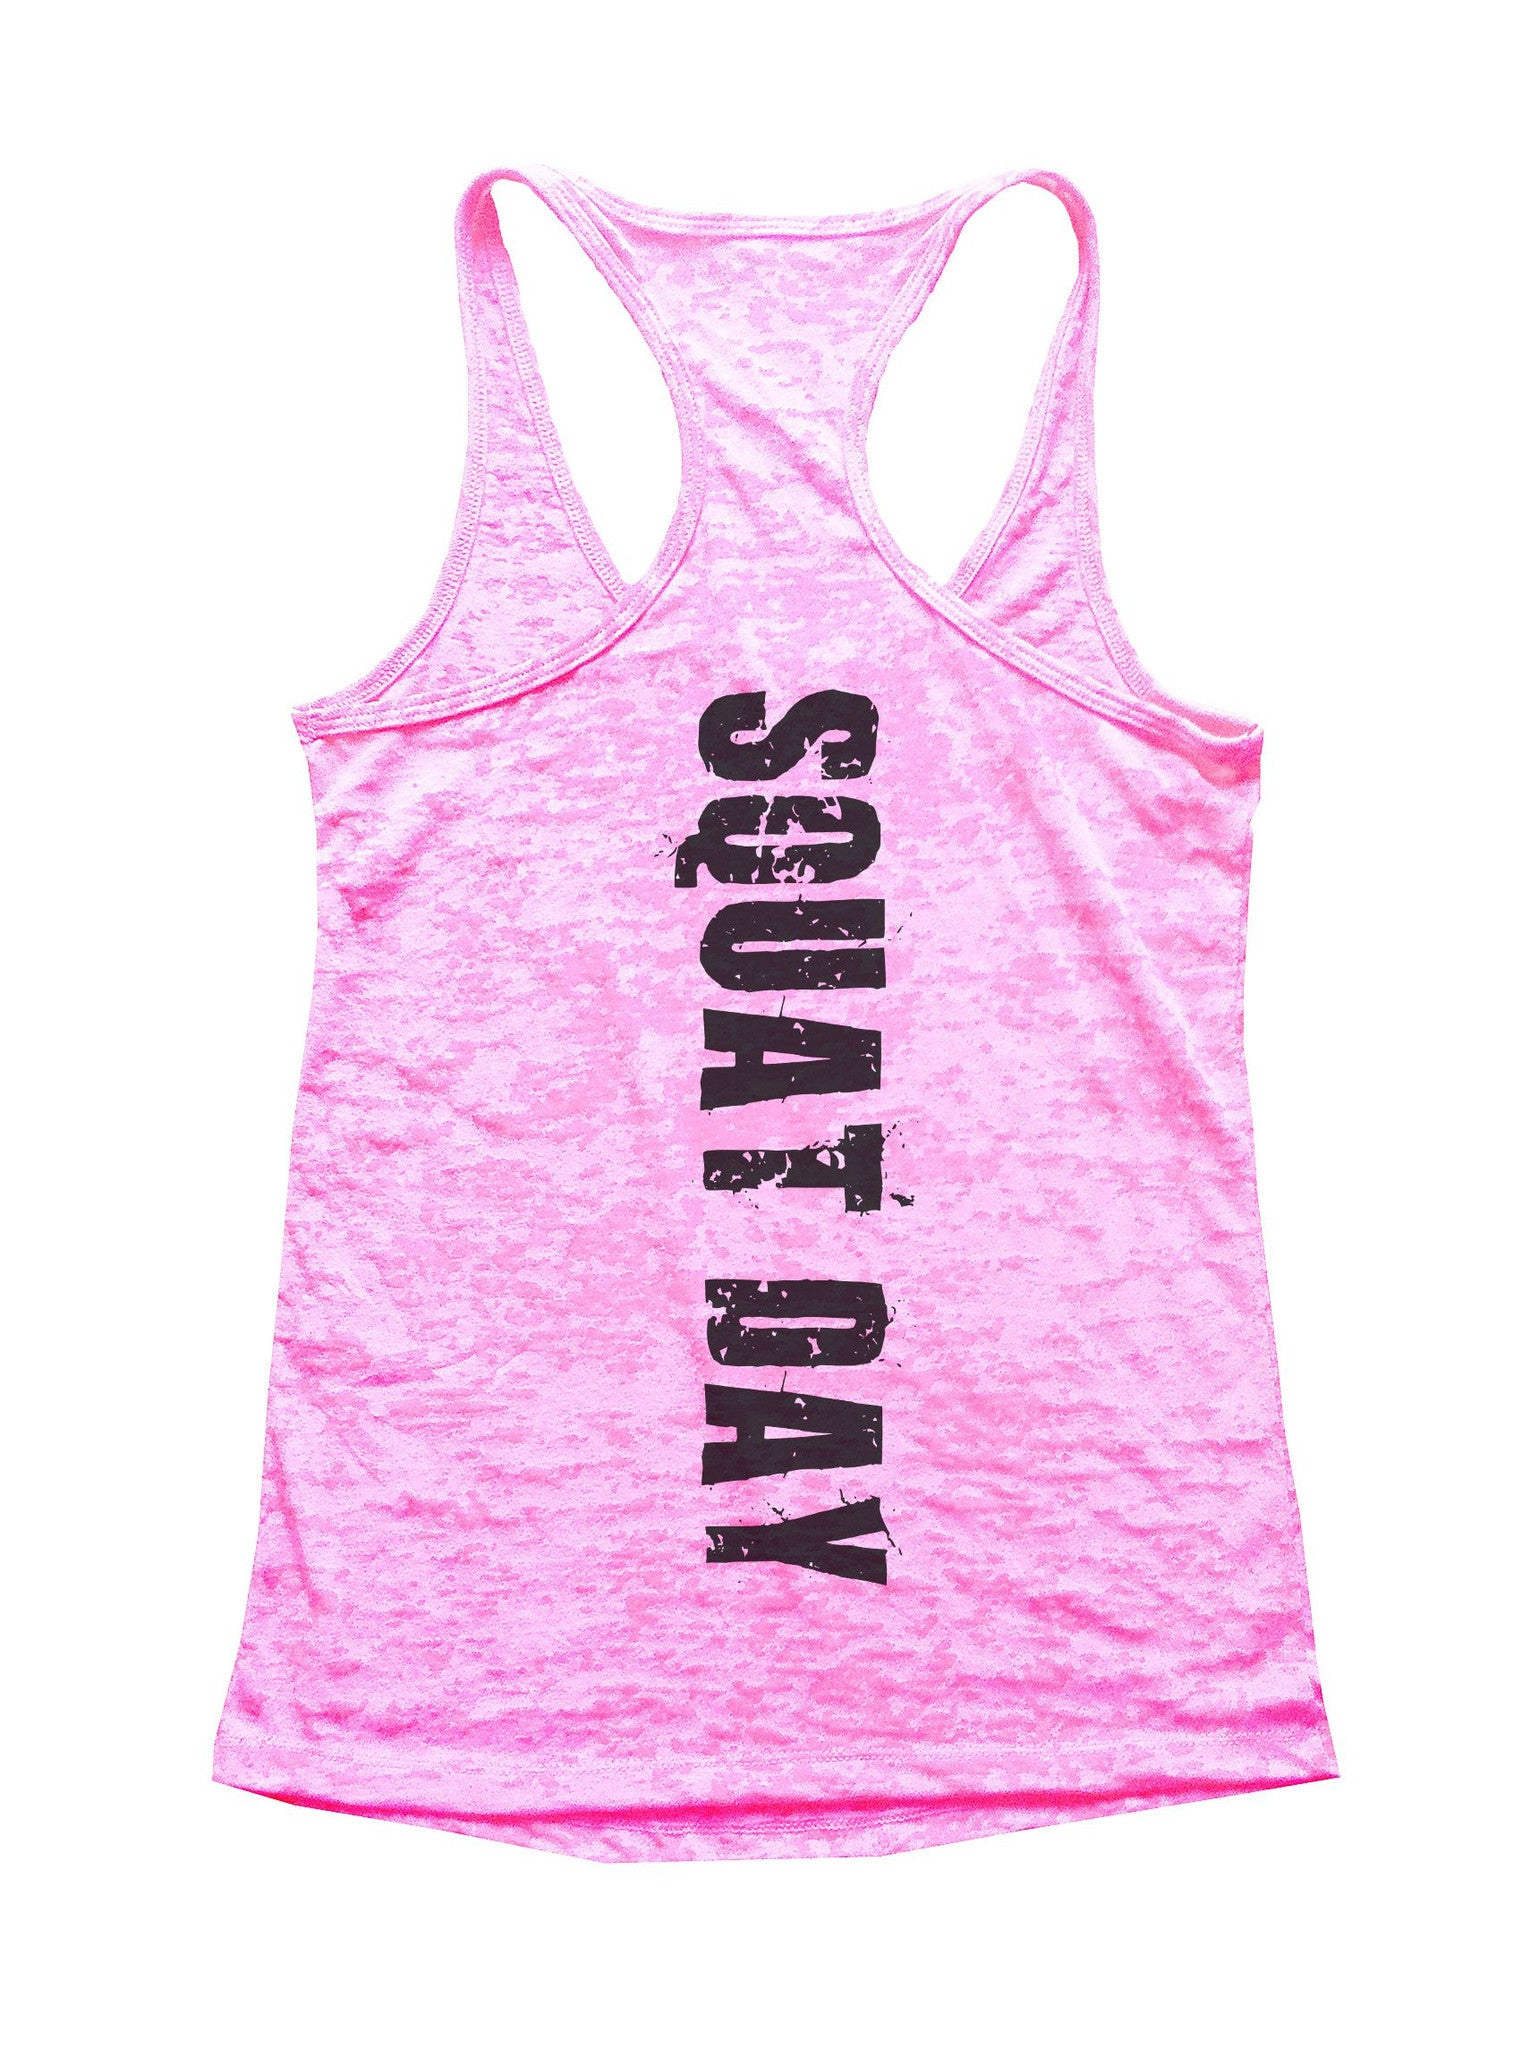 Squat Day Burnout Tank Top By BurnoutTankTops.com - 770 - Funny Shirts Tank Tops Burnouts and Triblends  - 1